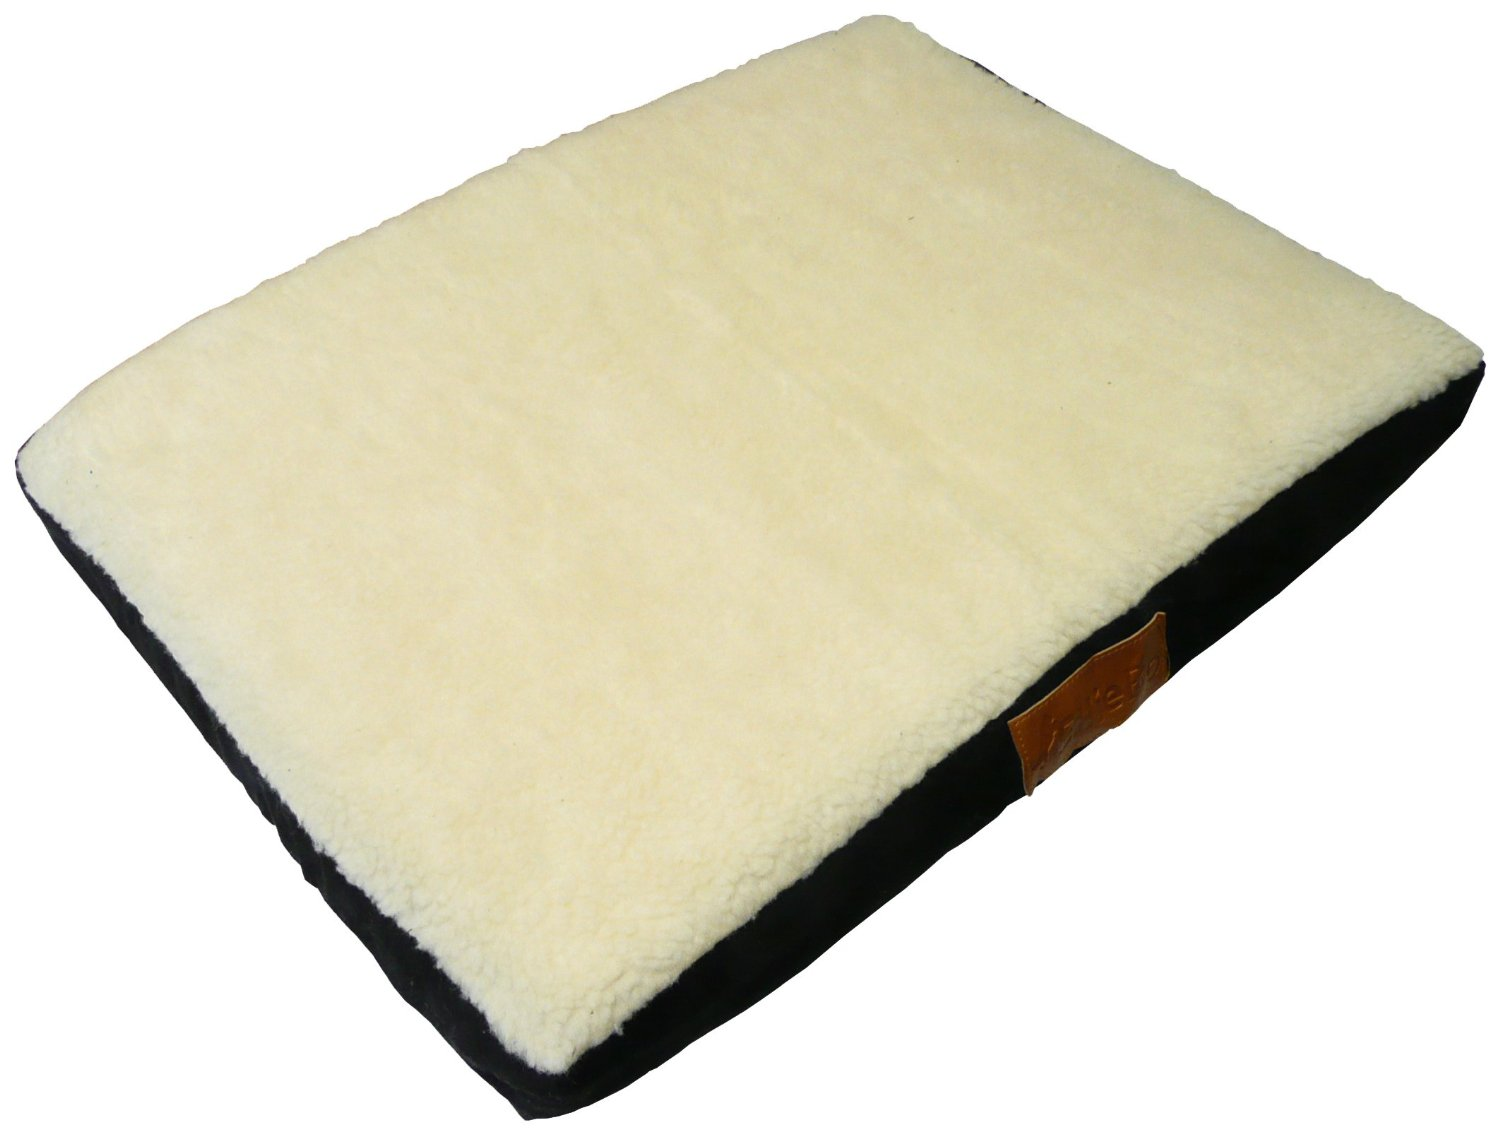 ellie-bo large black memory foam dog bed with faux suede and